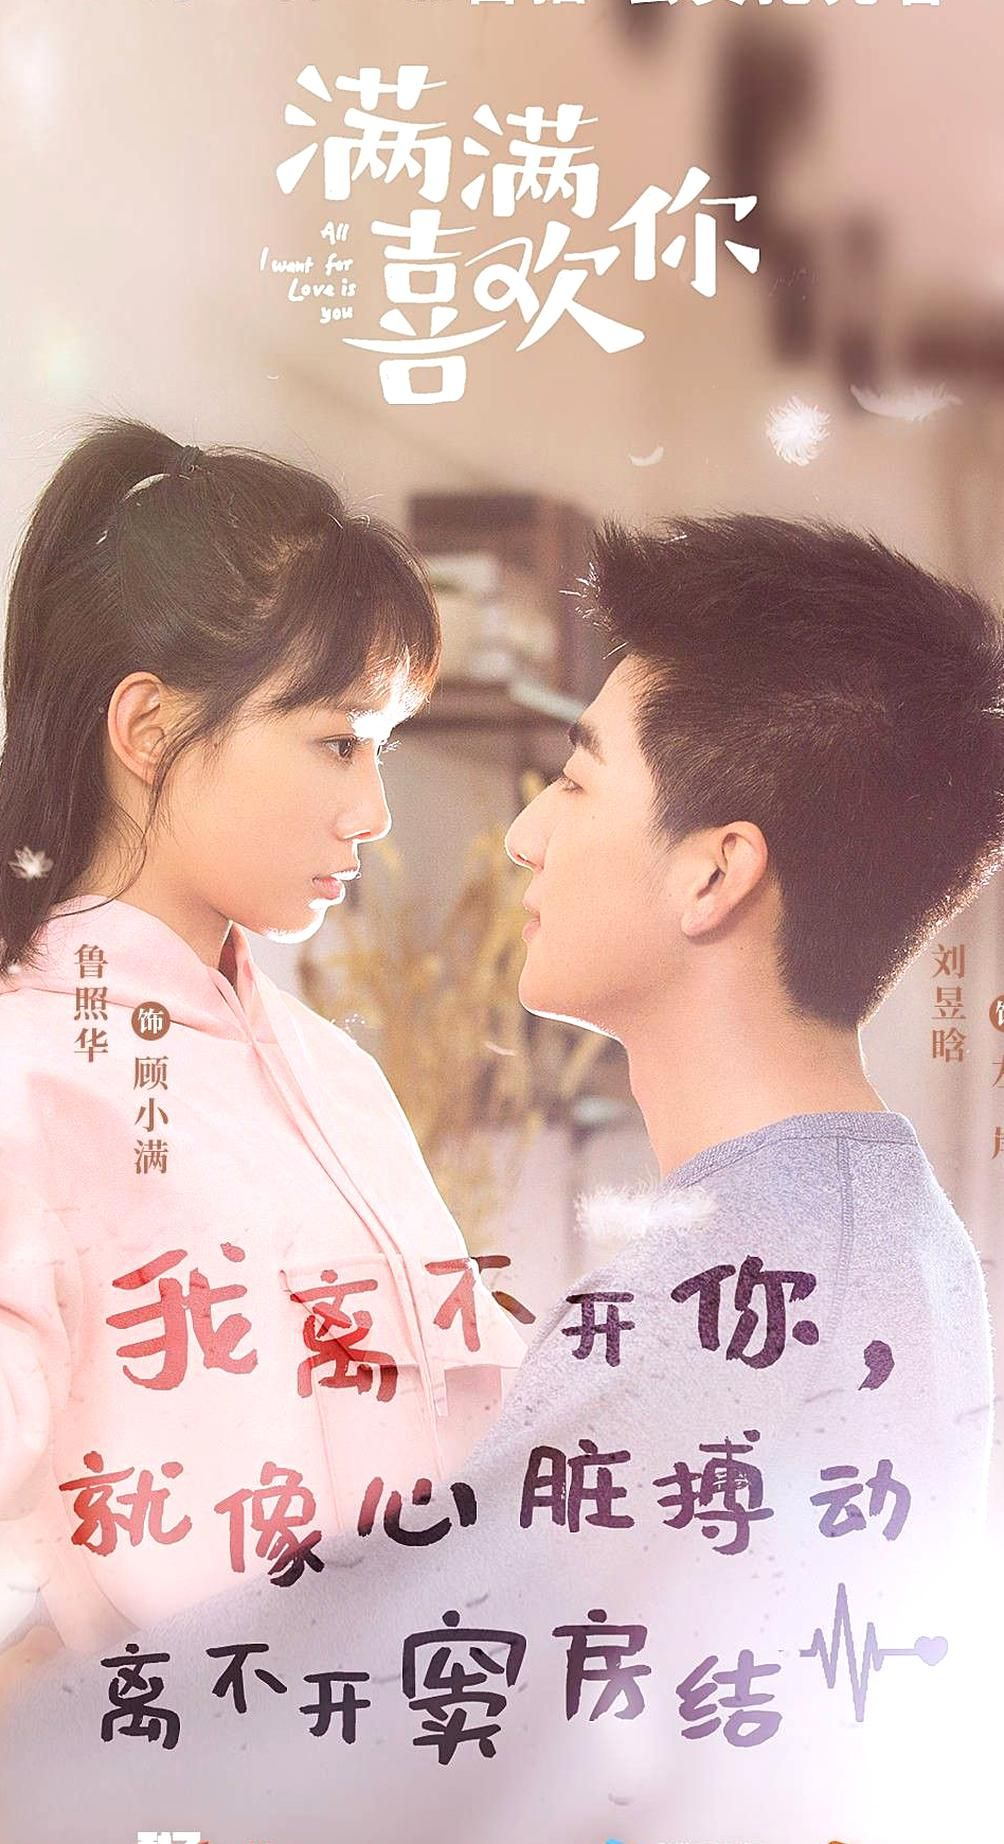 All I Want For Love Is You Chinese Drama In 2020 Taiwan Drama Drama Tv Shows Drama School